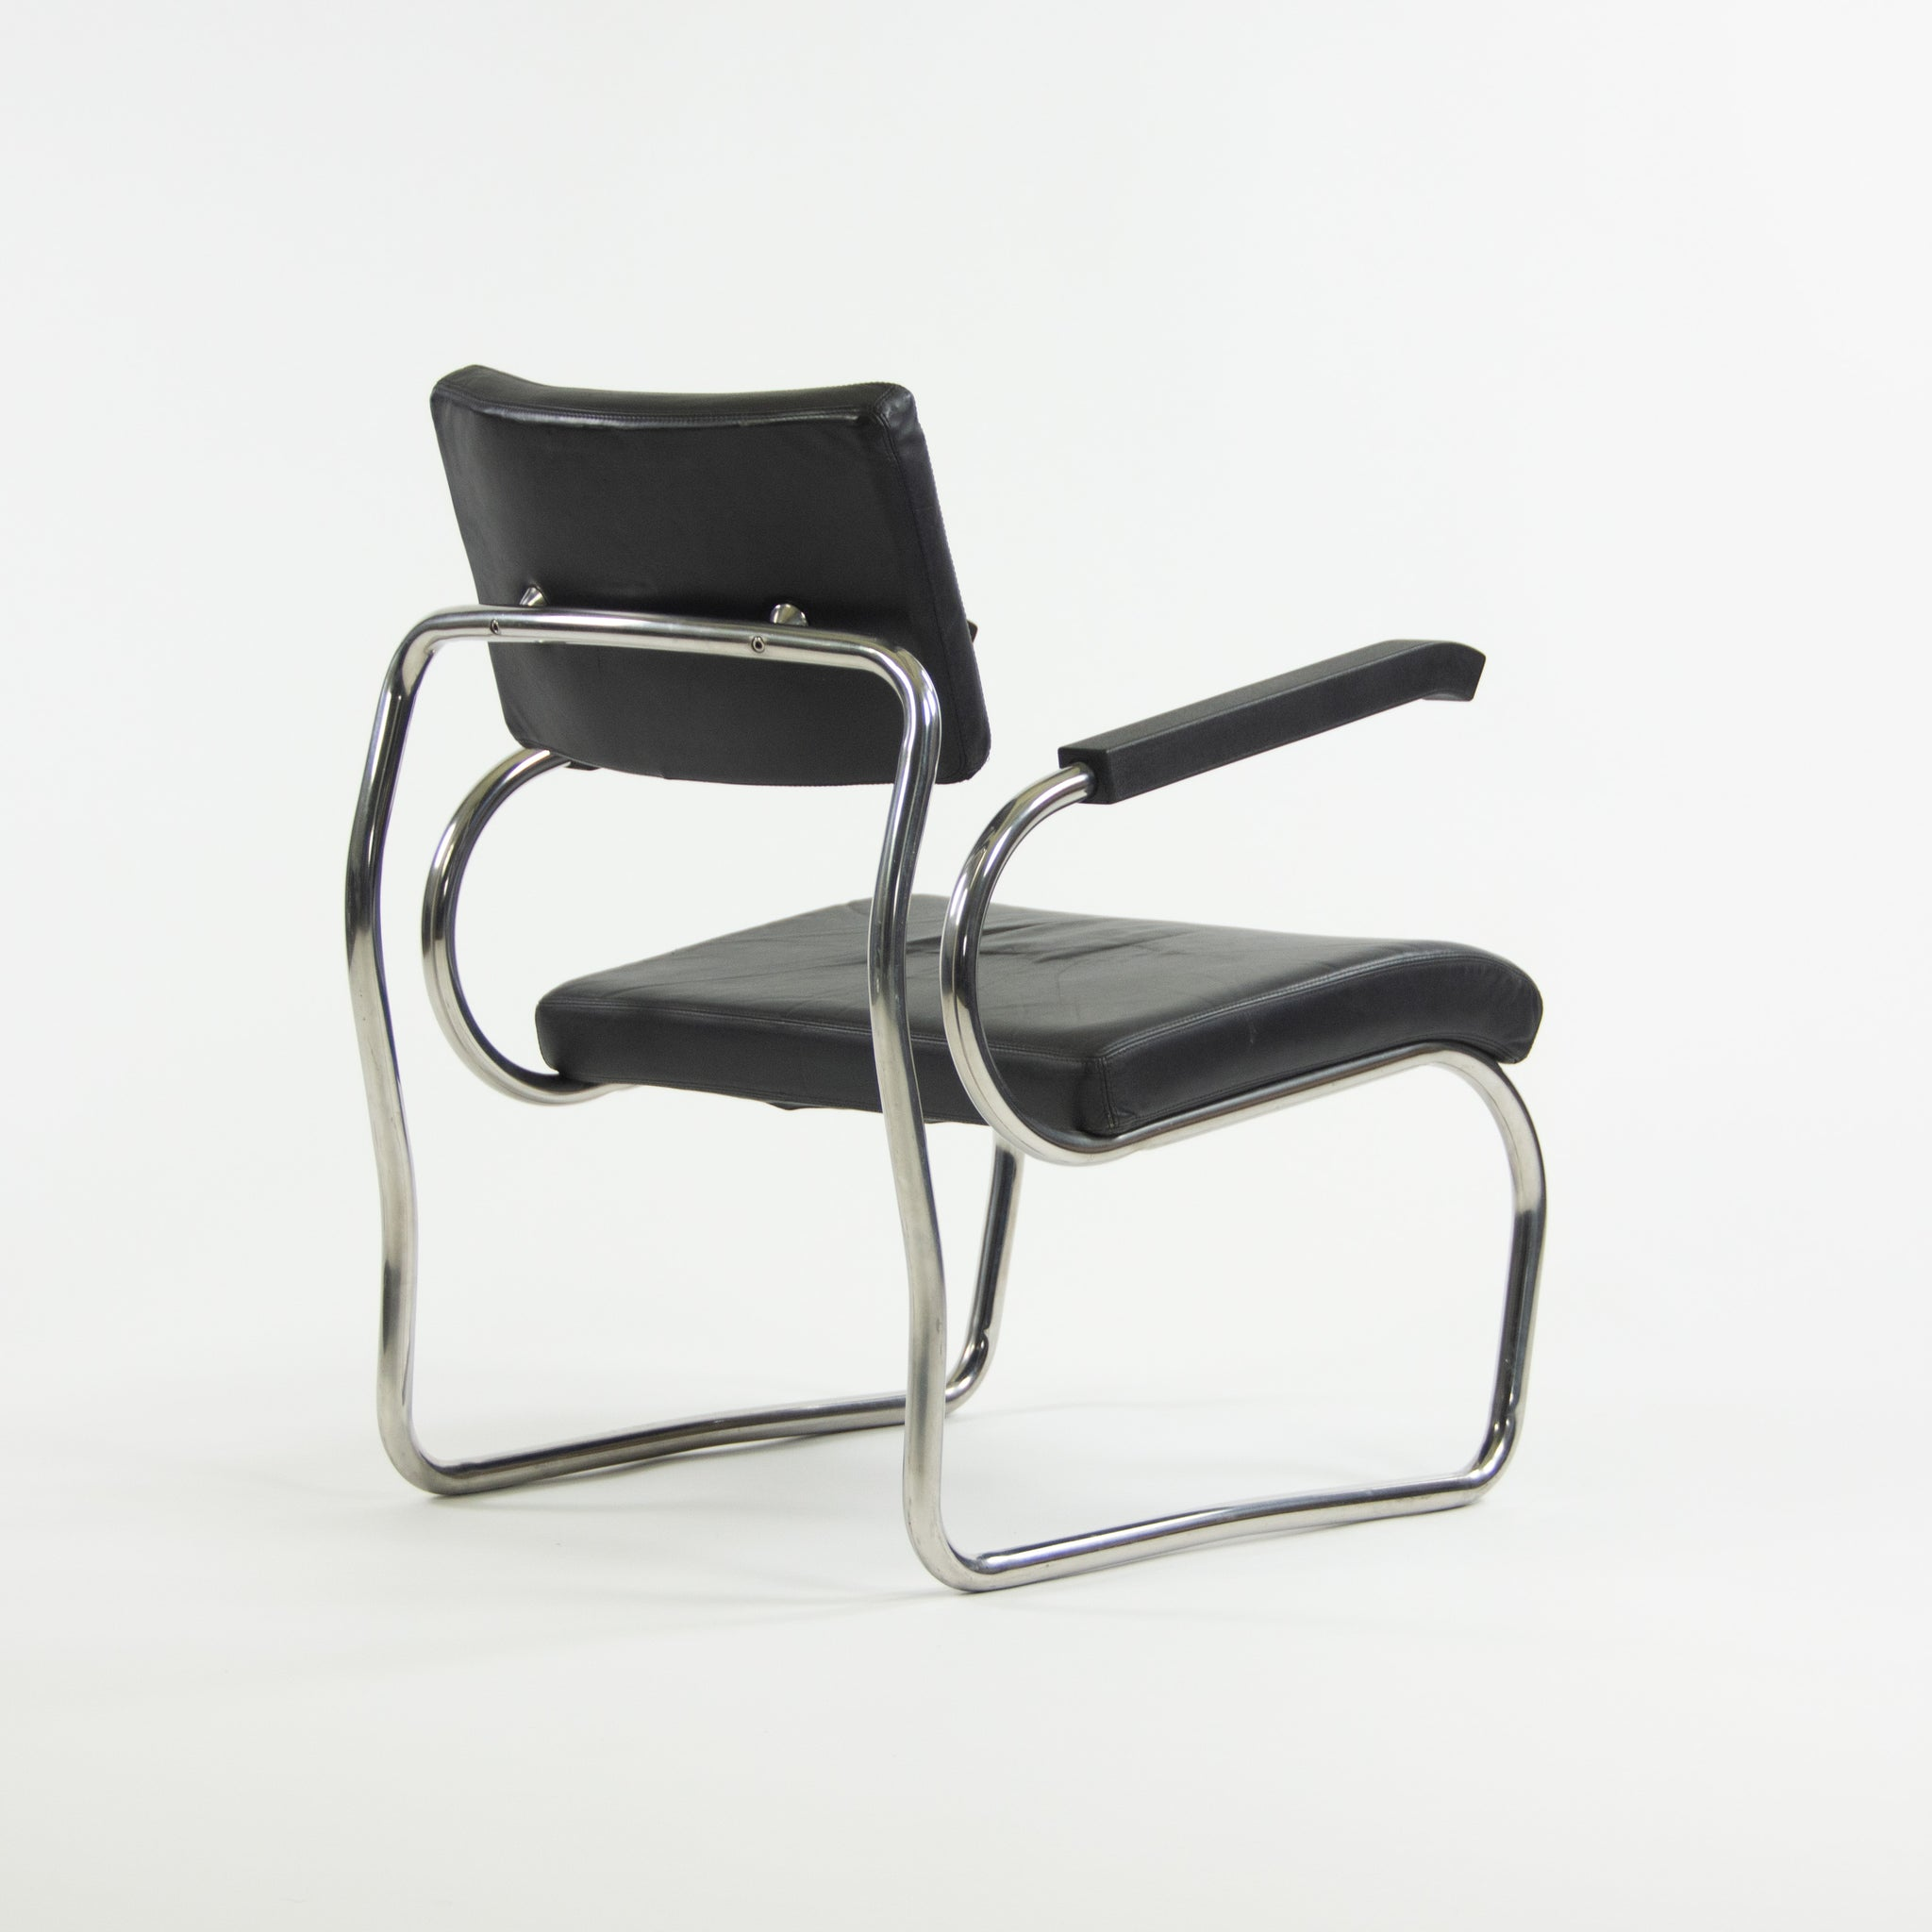 1990s Pair of Sant'elia Arm Chairs by Giuseppe Terragni for Zanotta Leather & Stainless